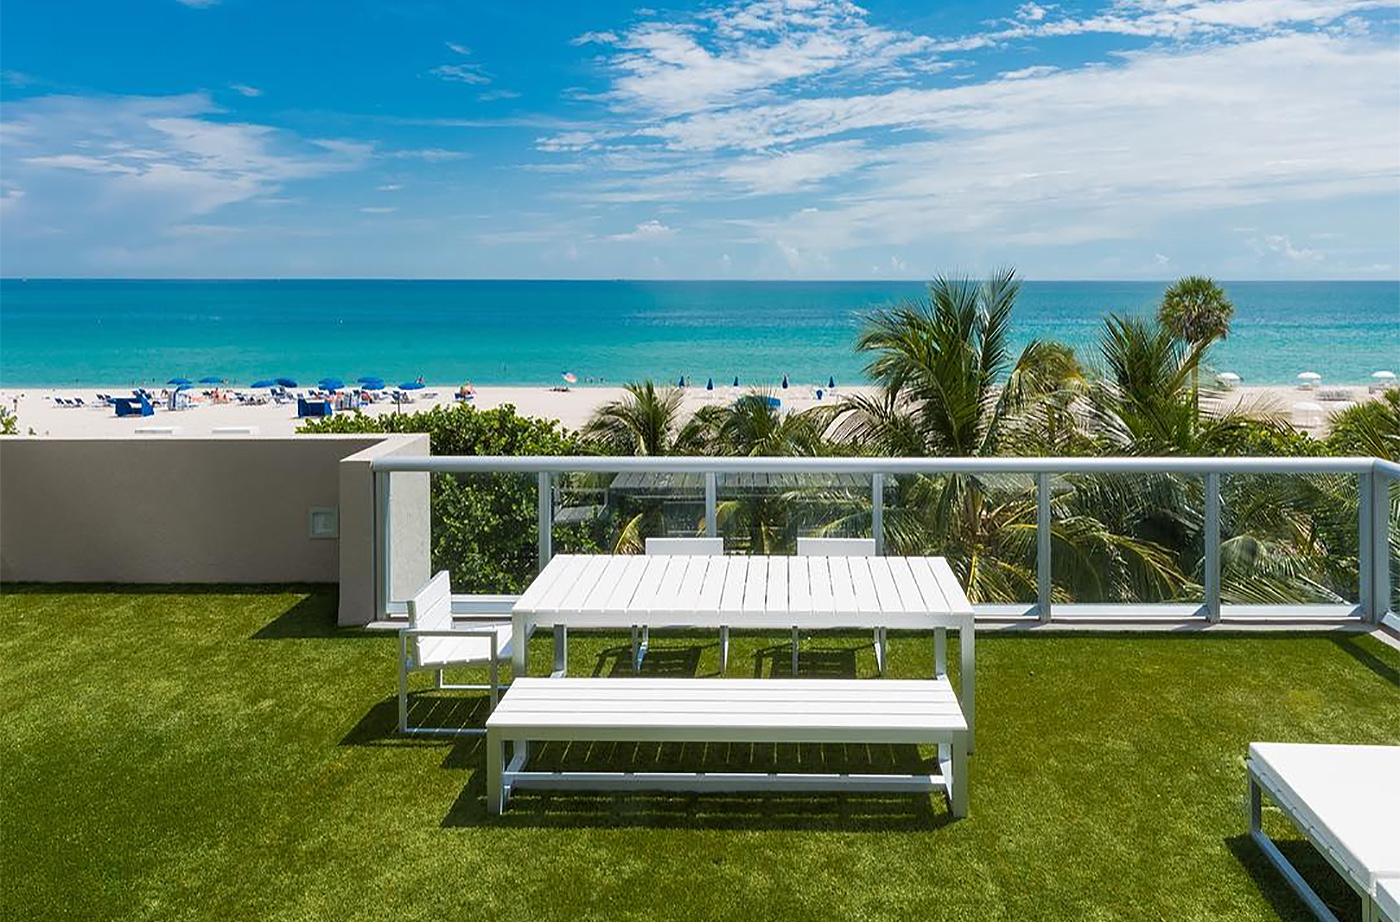 Backyard terrace with turf, white table, and the ocean and beach in the background